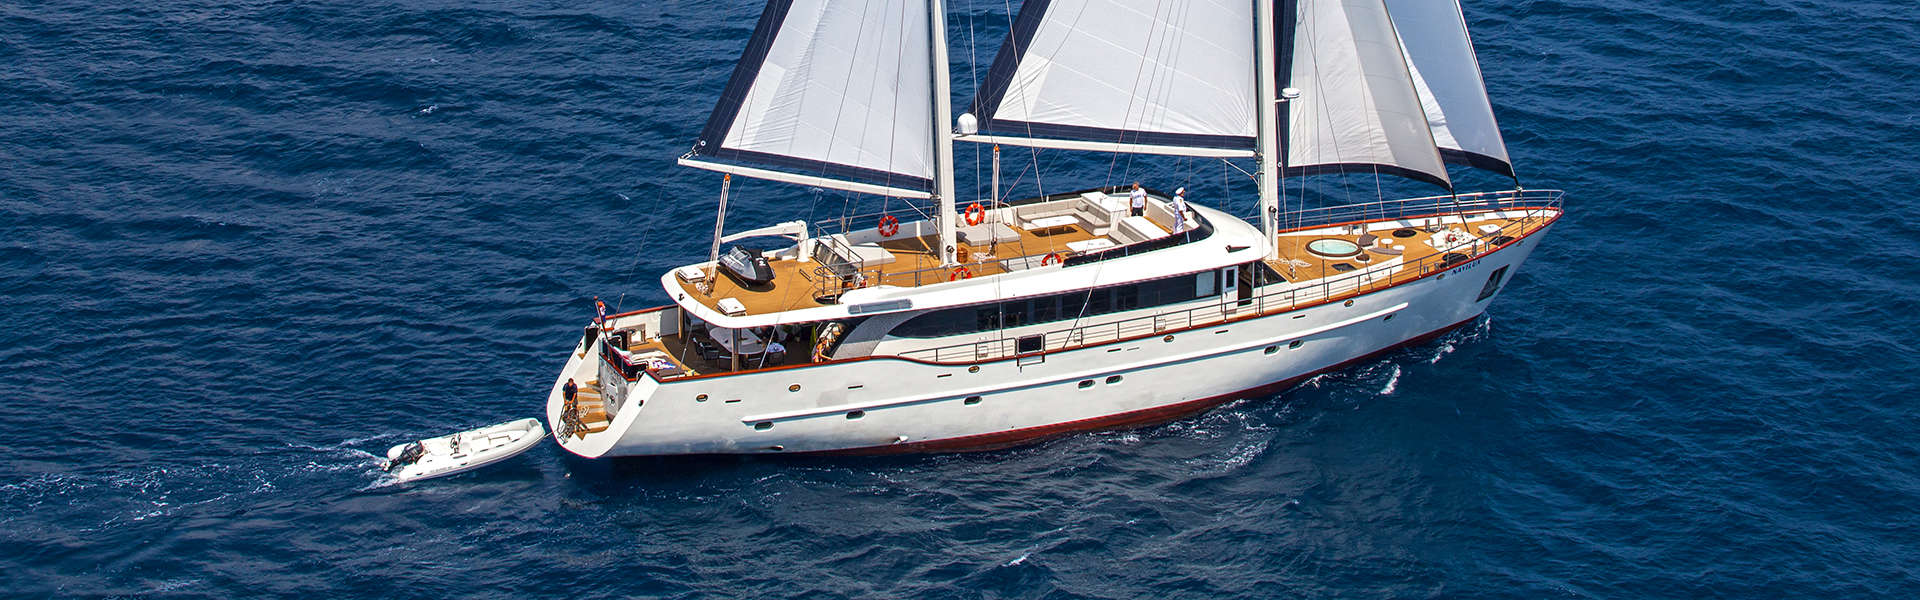 LUXURY YACHT CHARTER CROATIA Header image